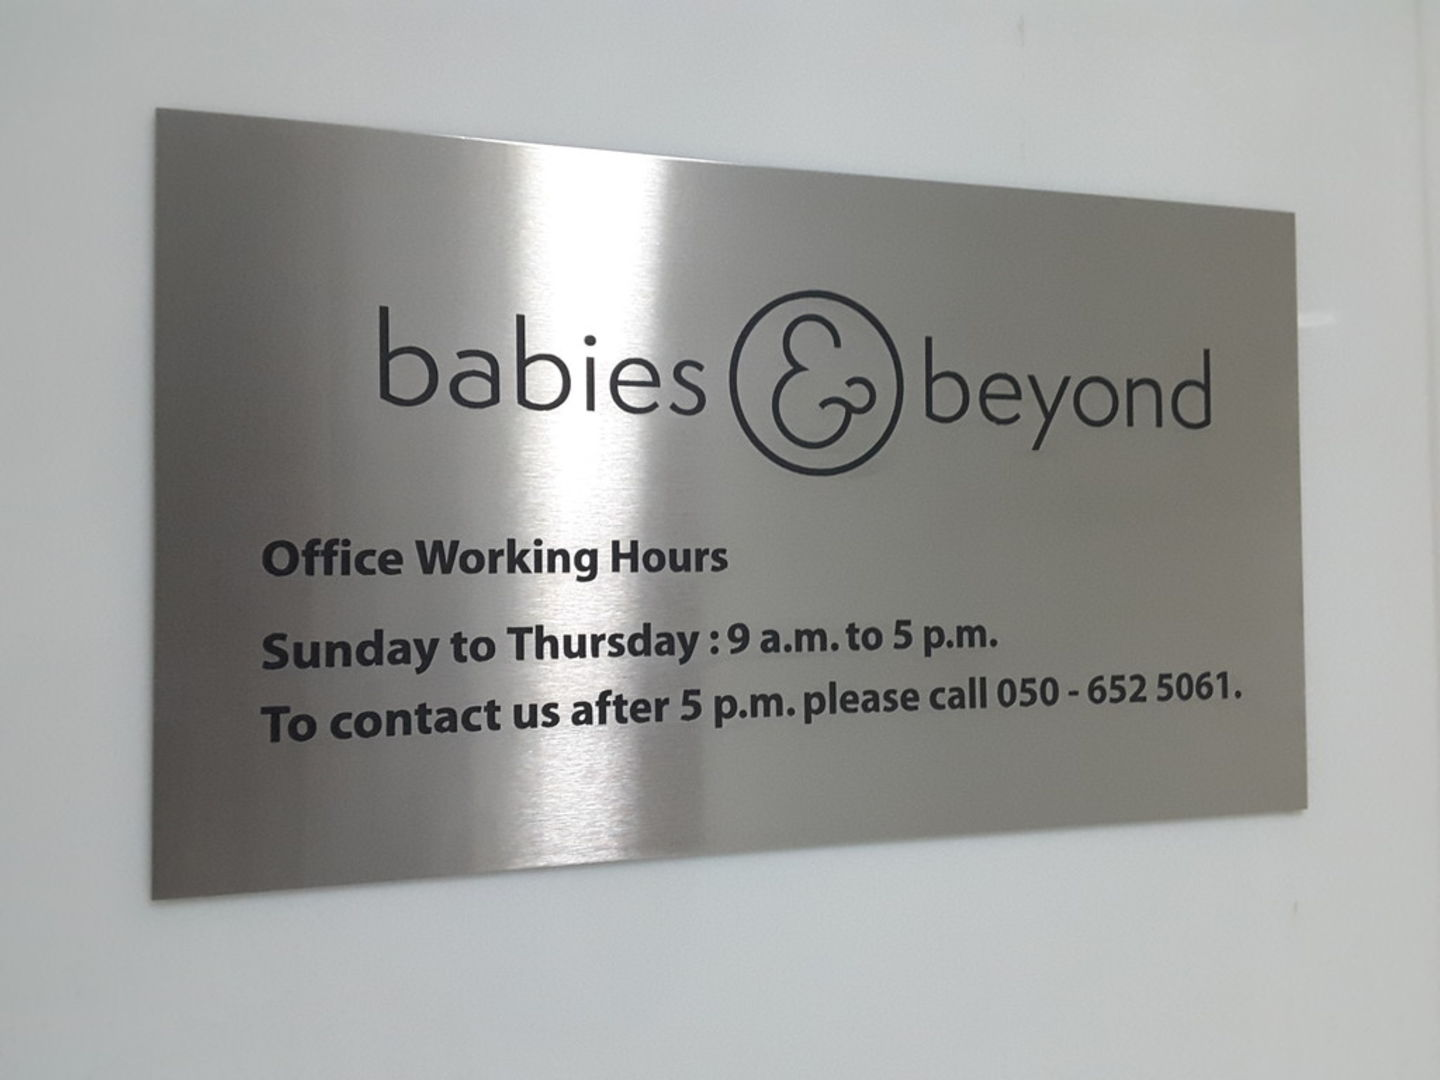 HiDubai-business-babies-beyond-home-nanny-services-dubai-media-city-al-sufouh-2-dubai-2